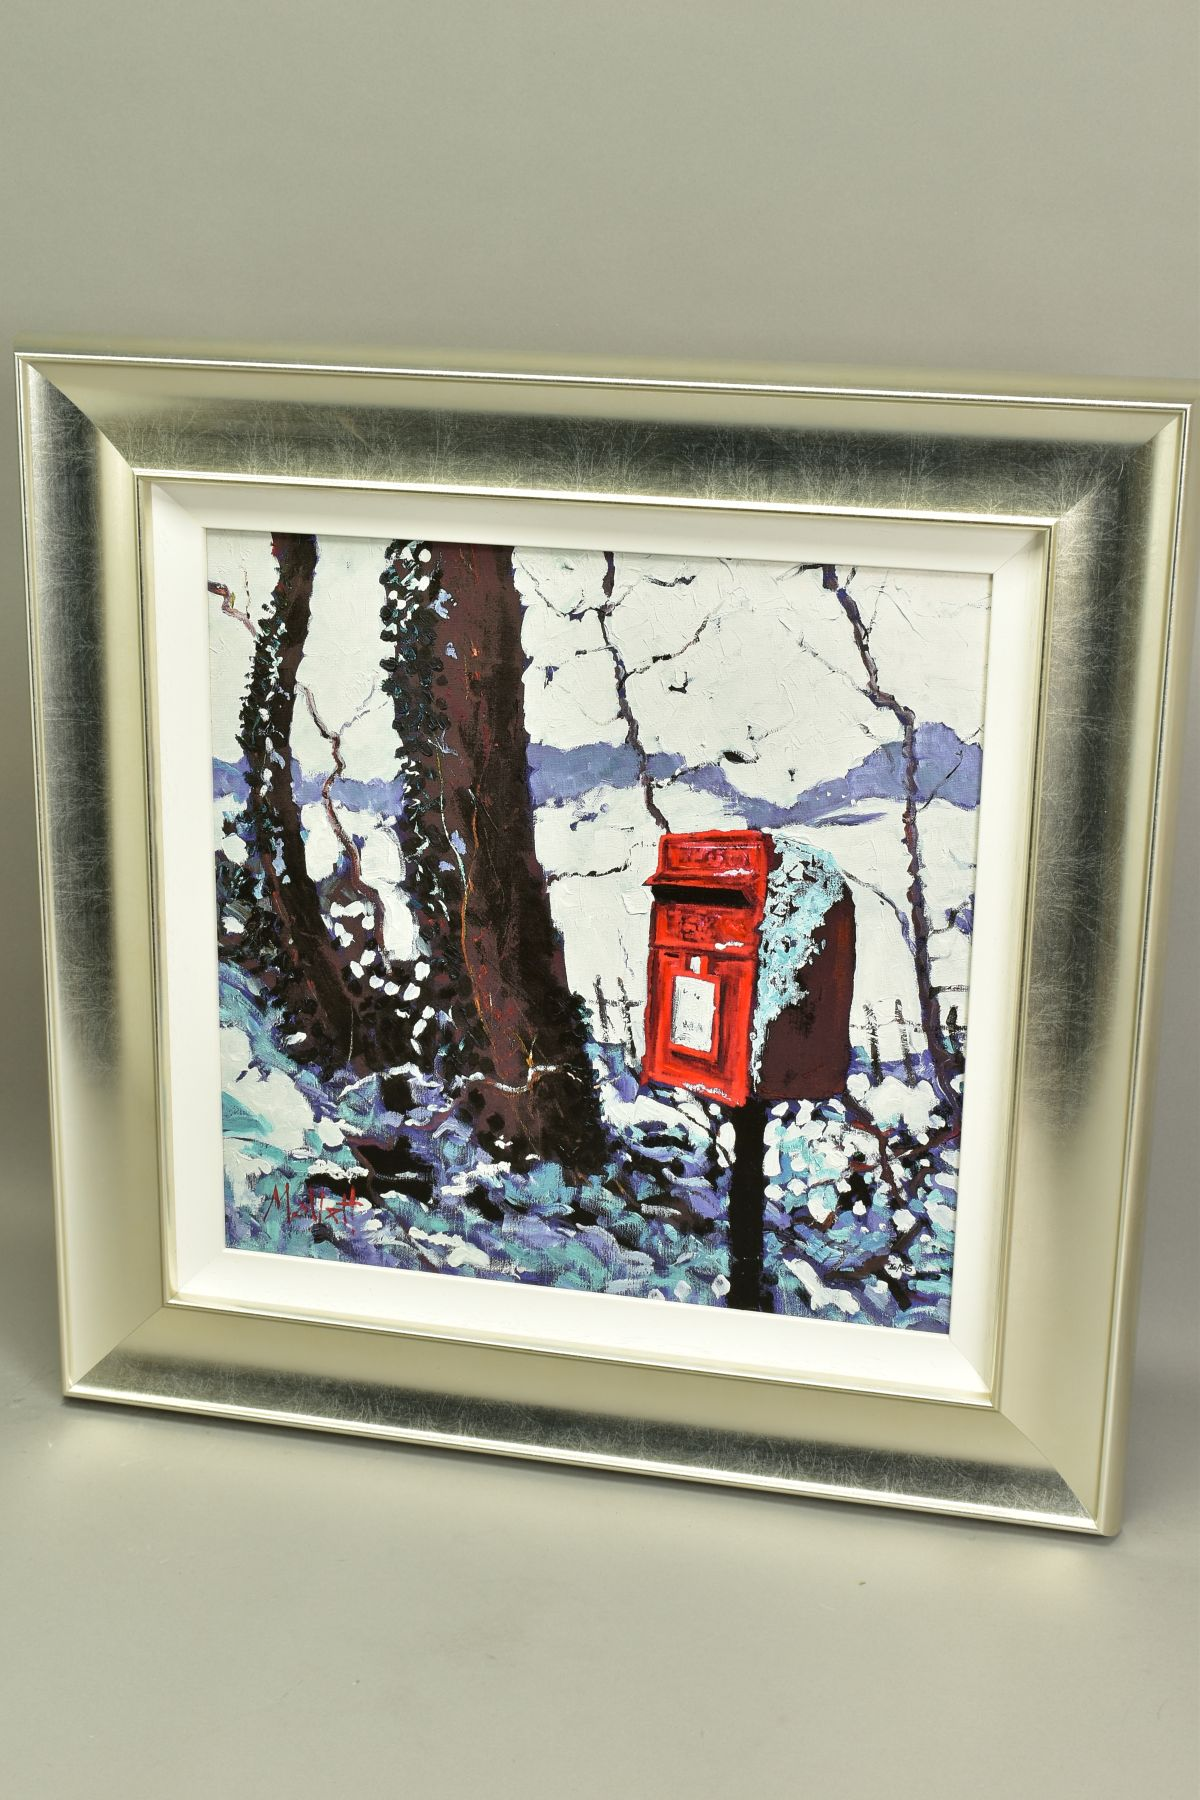 TIMMY MALLETT (BRITISH CONTEMPORARY), 'Snowy Post Box', a Limited Edition print, 26/195, signed - Image 4 of 5